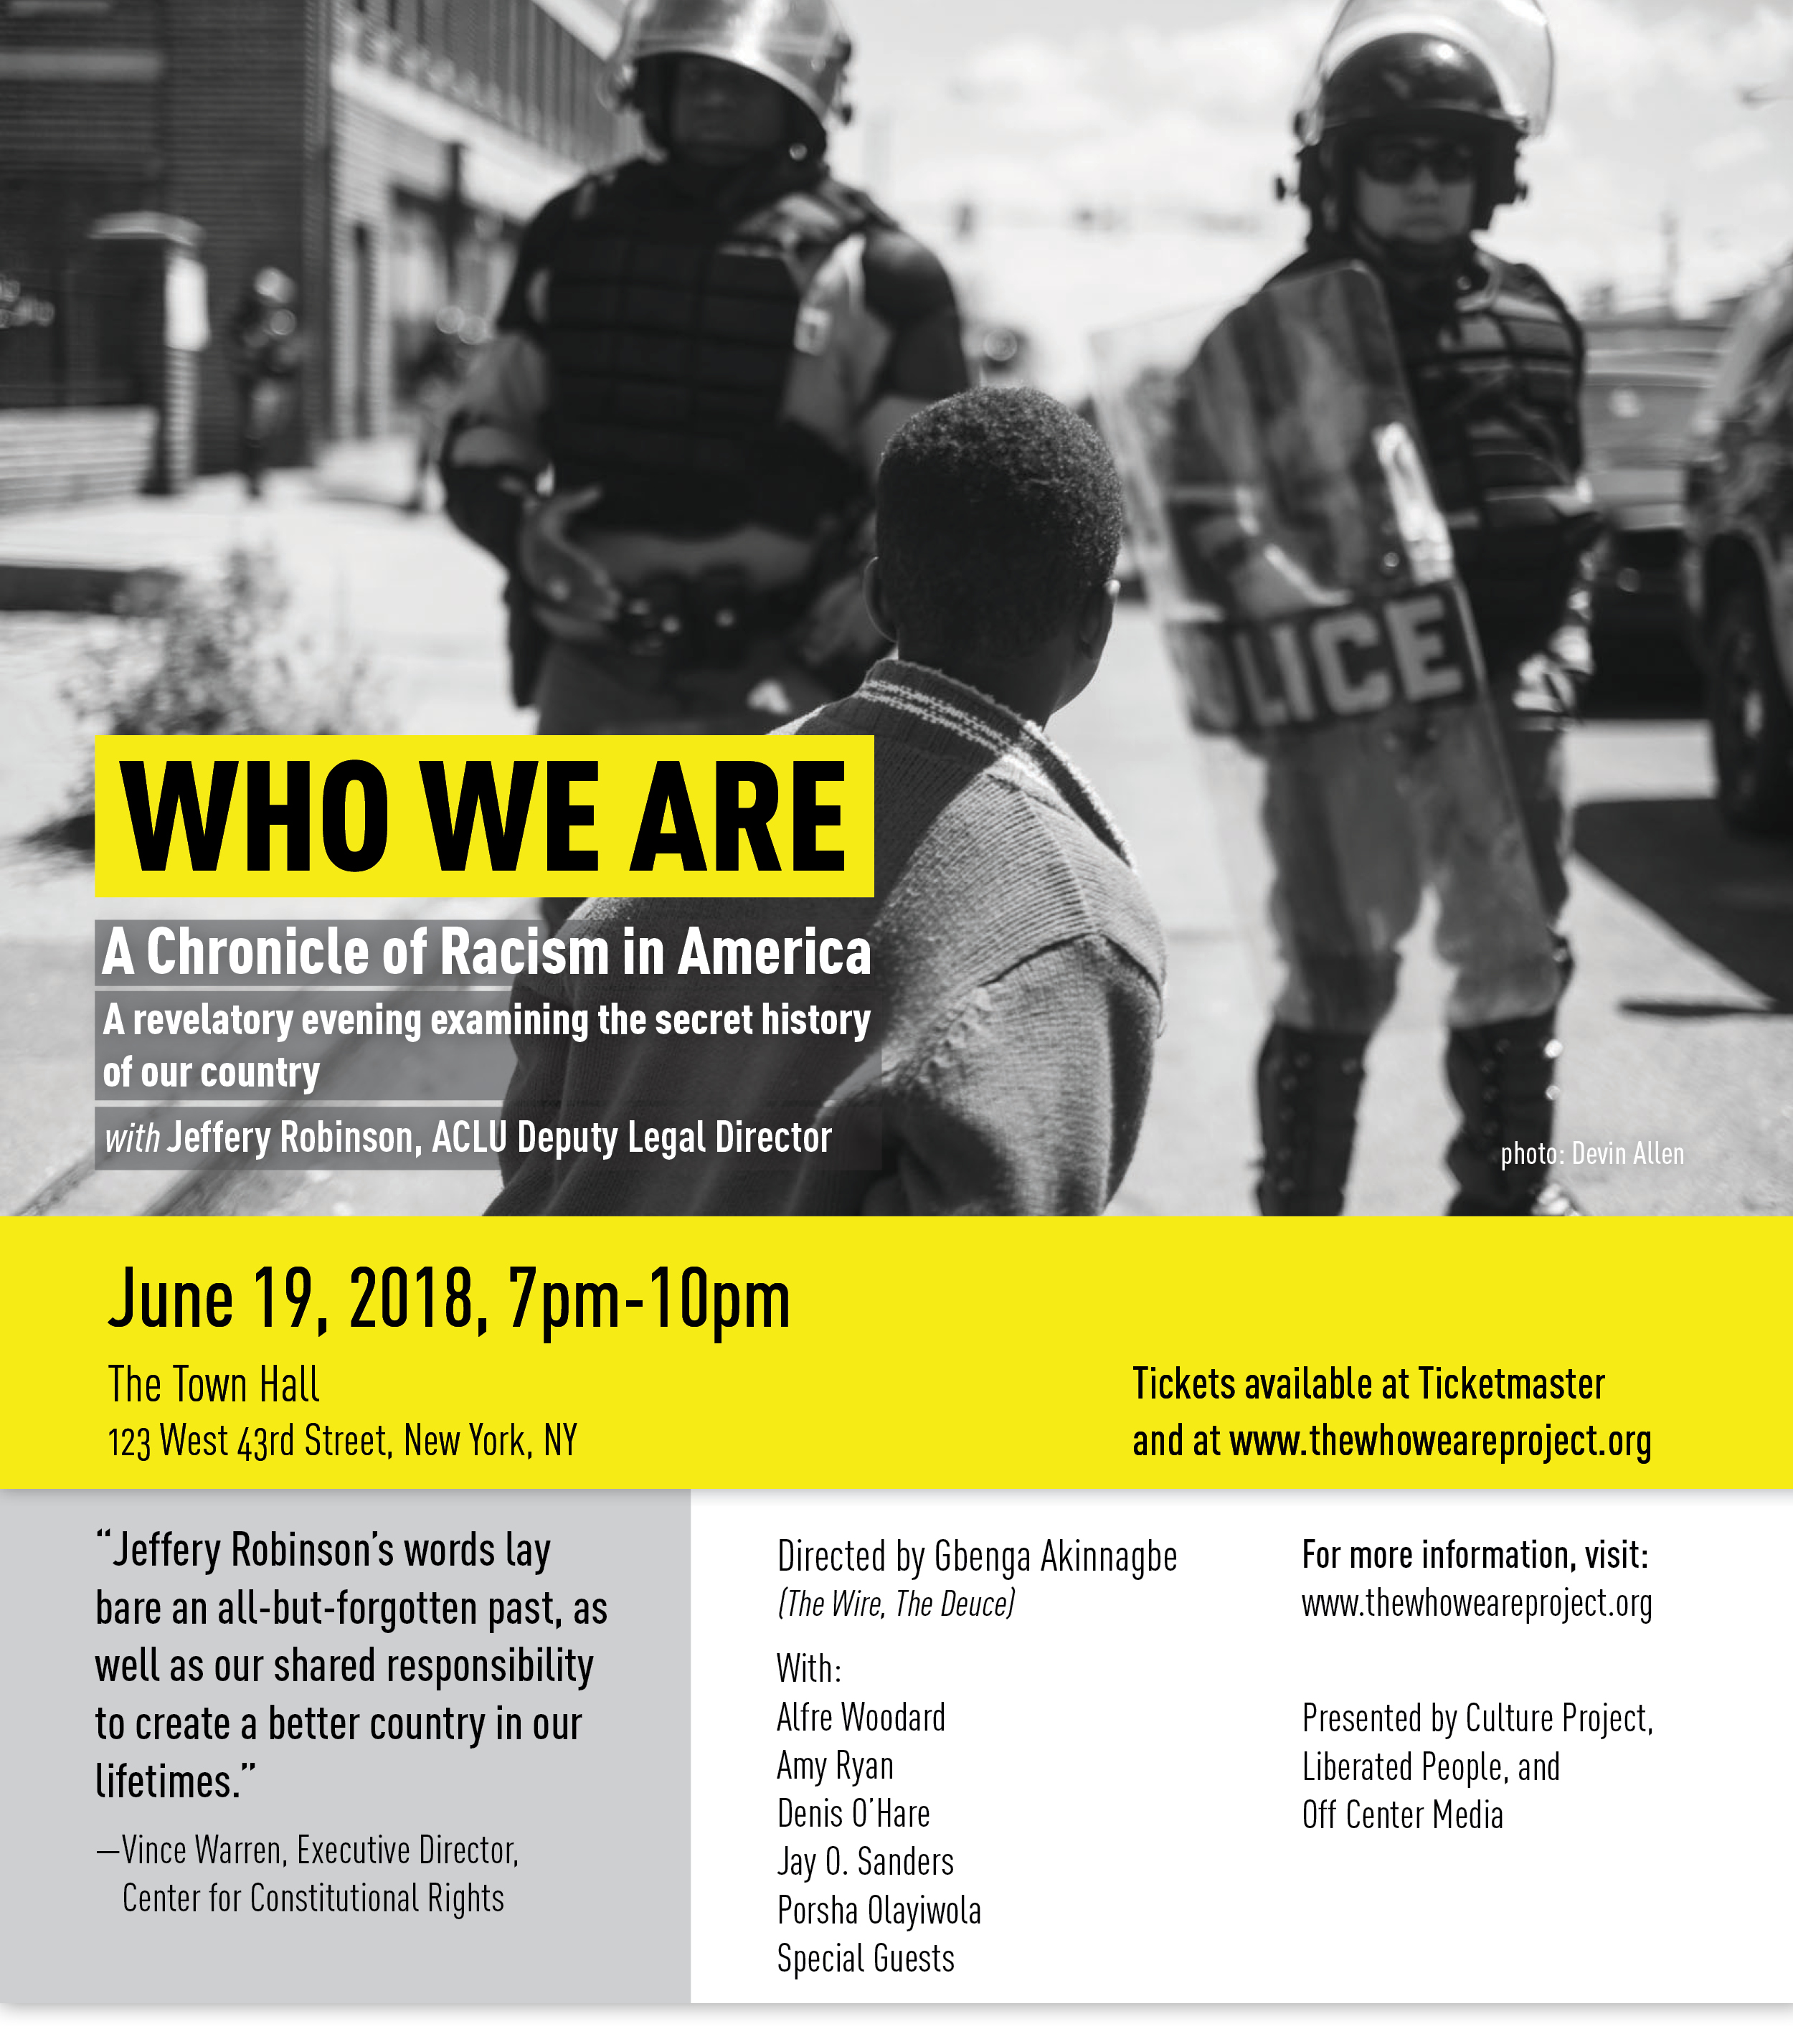 Who We Are: A Chronicle of Racism in America | Center for